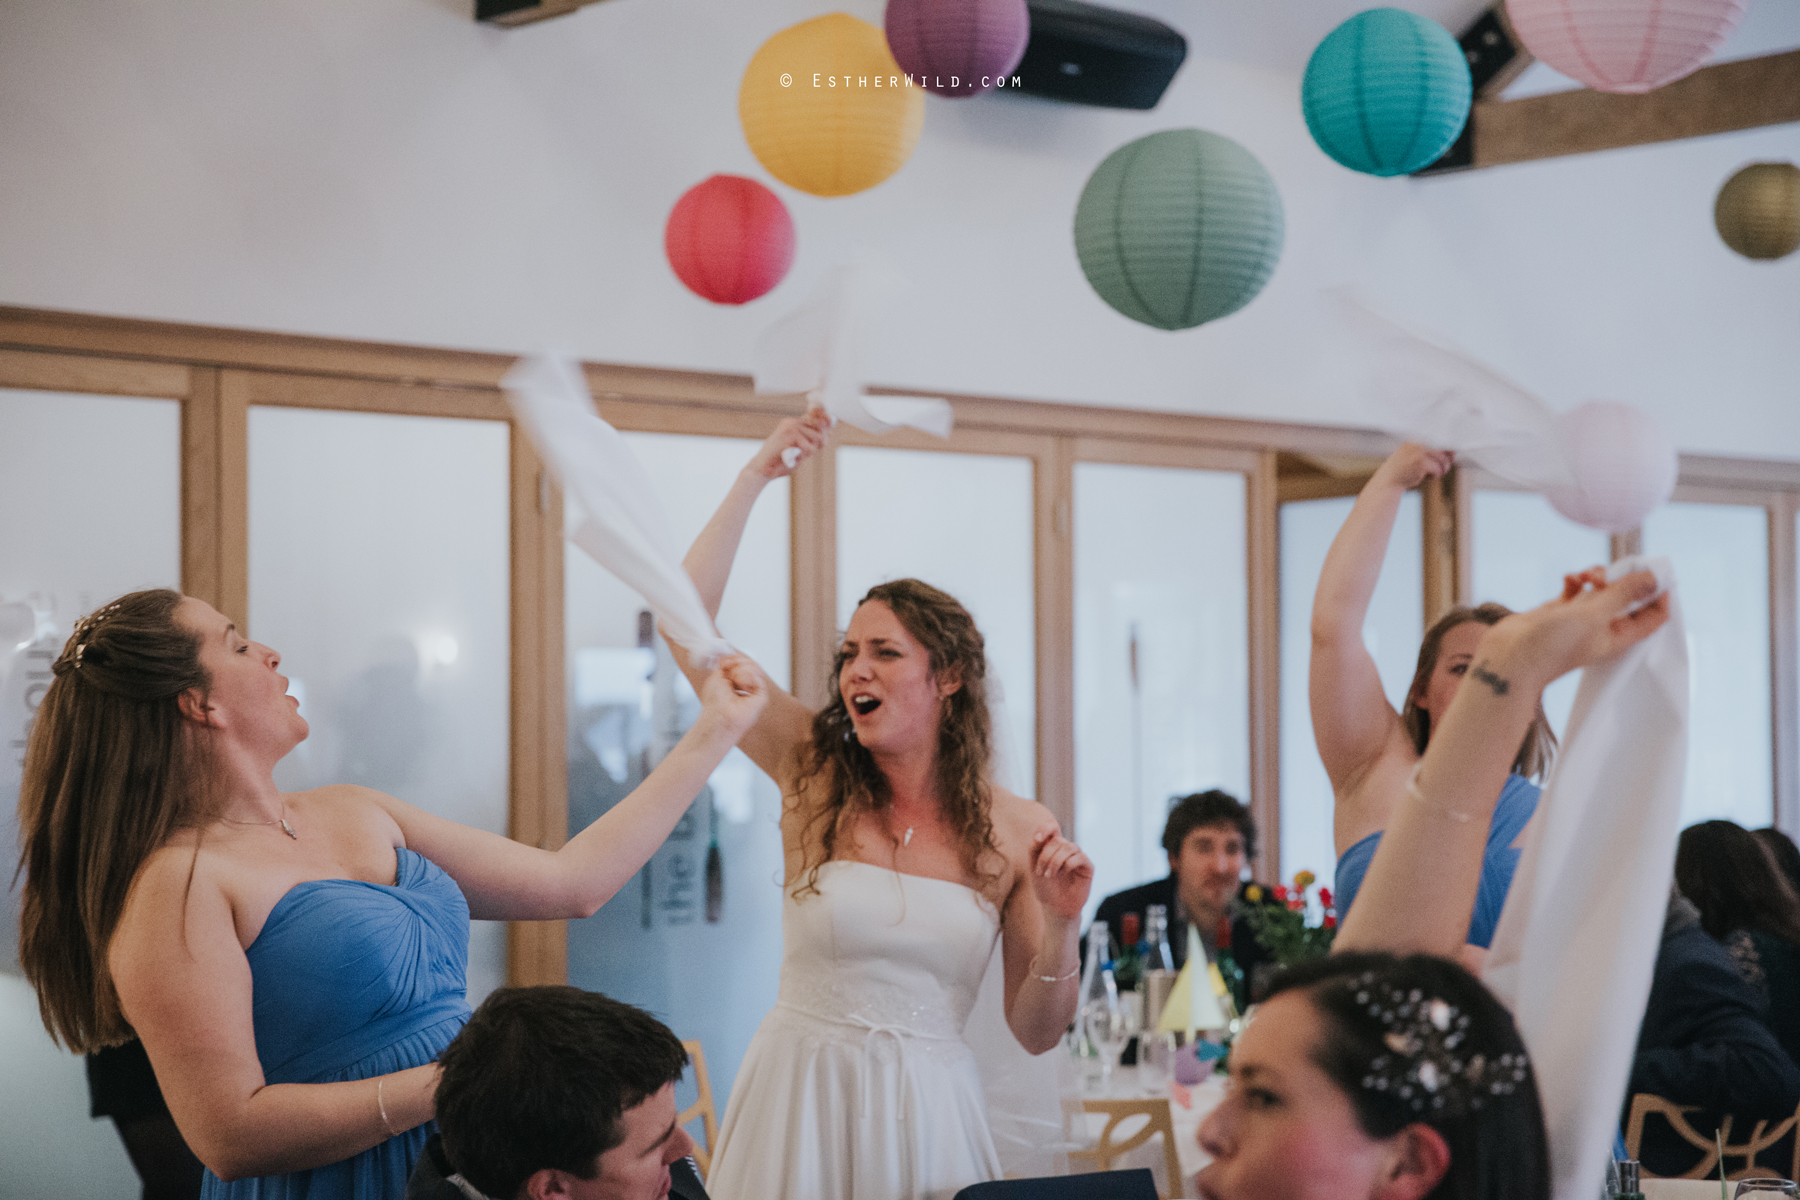 The_BoatHouse_Wedding_Venue_Ormesby_Norfolk_Broads_Boat_Wedding_Photography_Esther_Wild_Photographer_IMG_2990.jpg